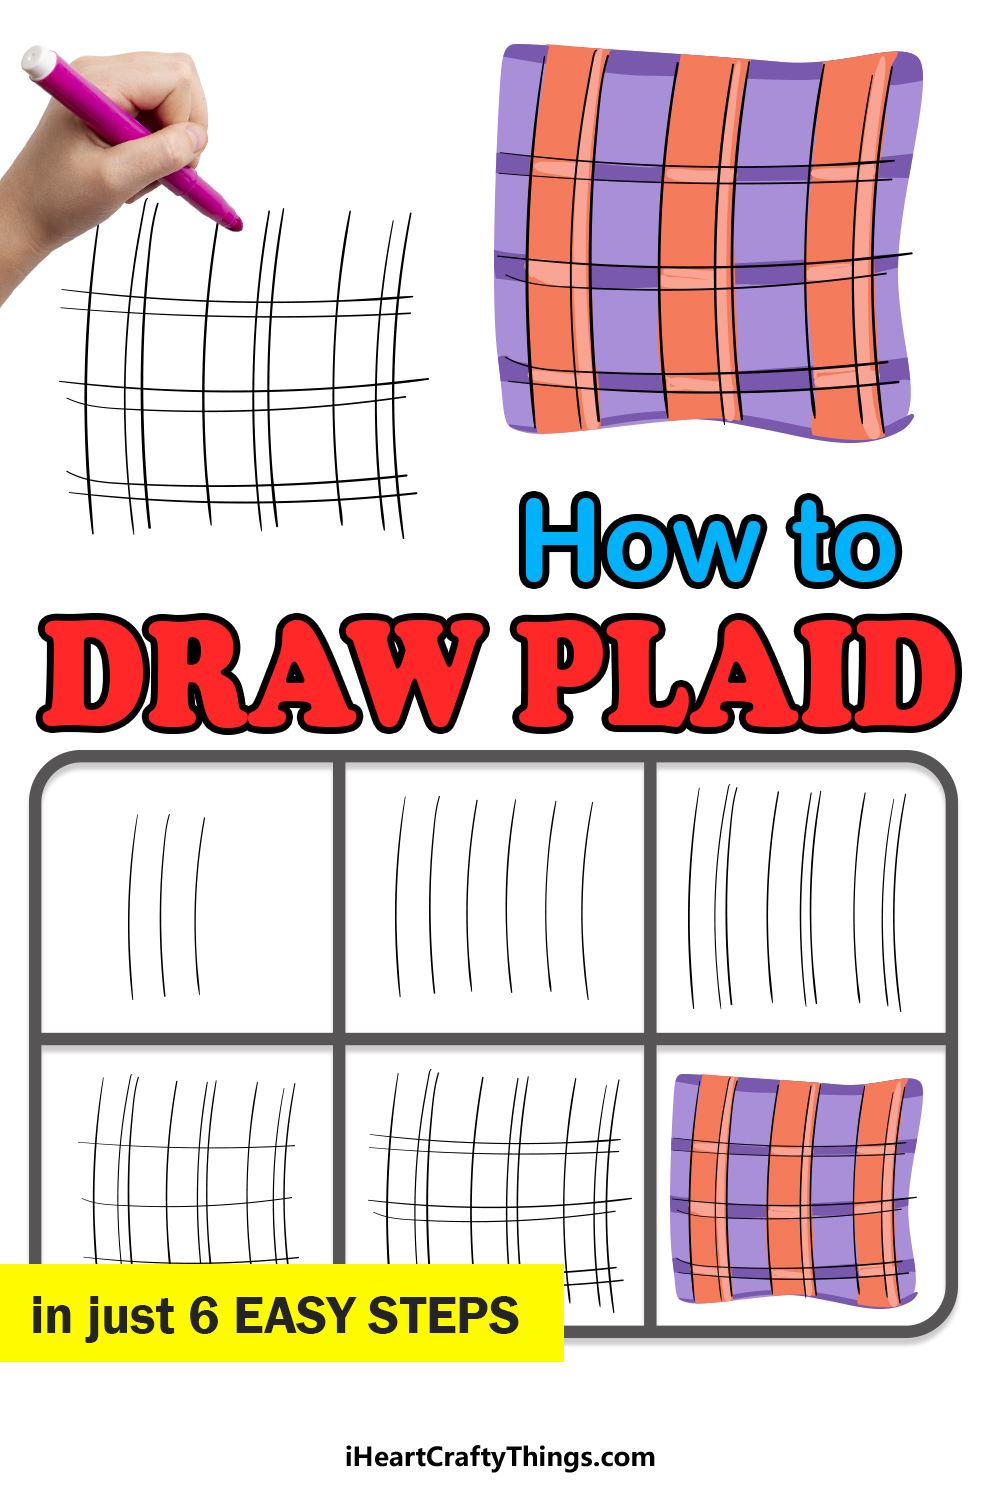 how to draw plaid in 6 easy steps